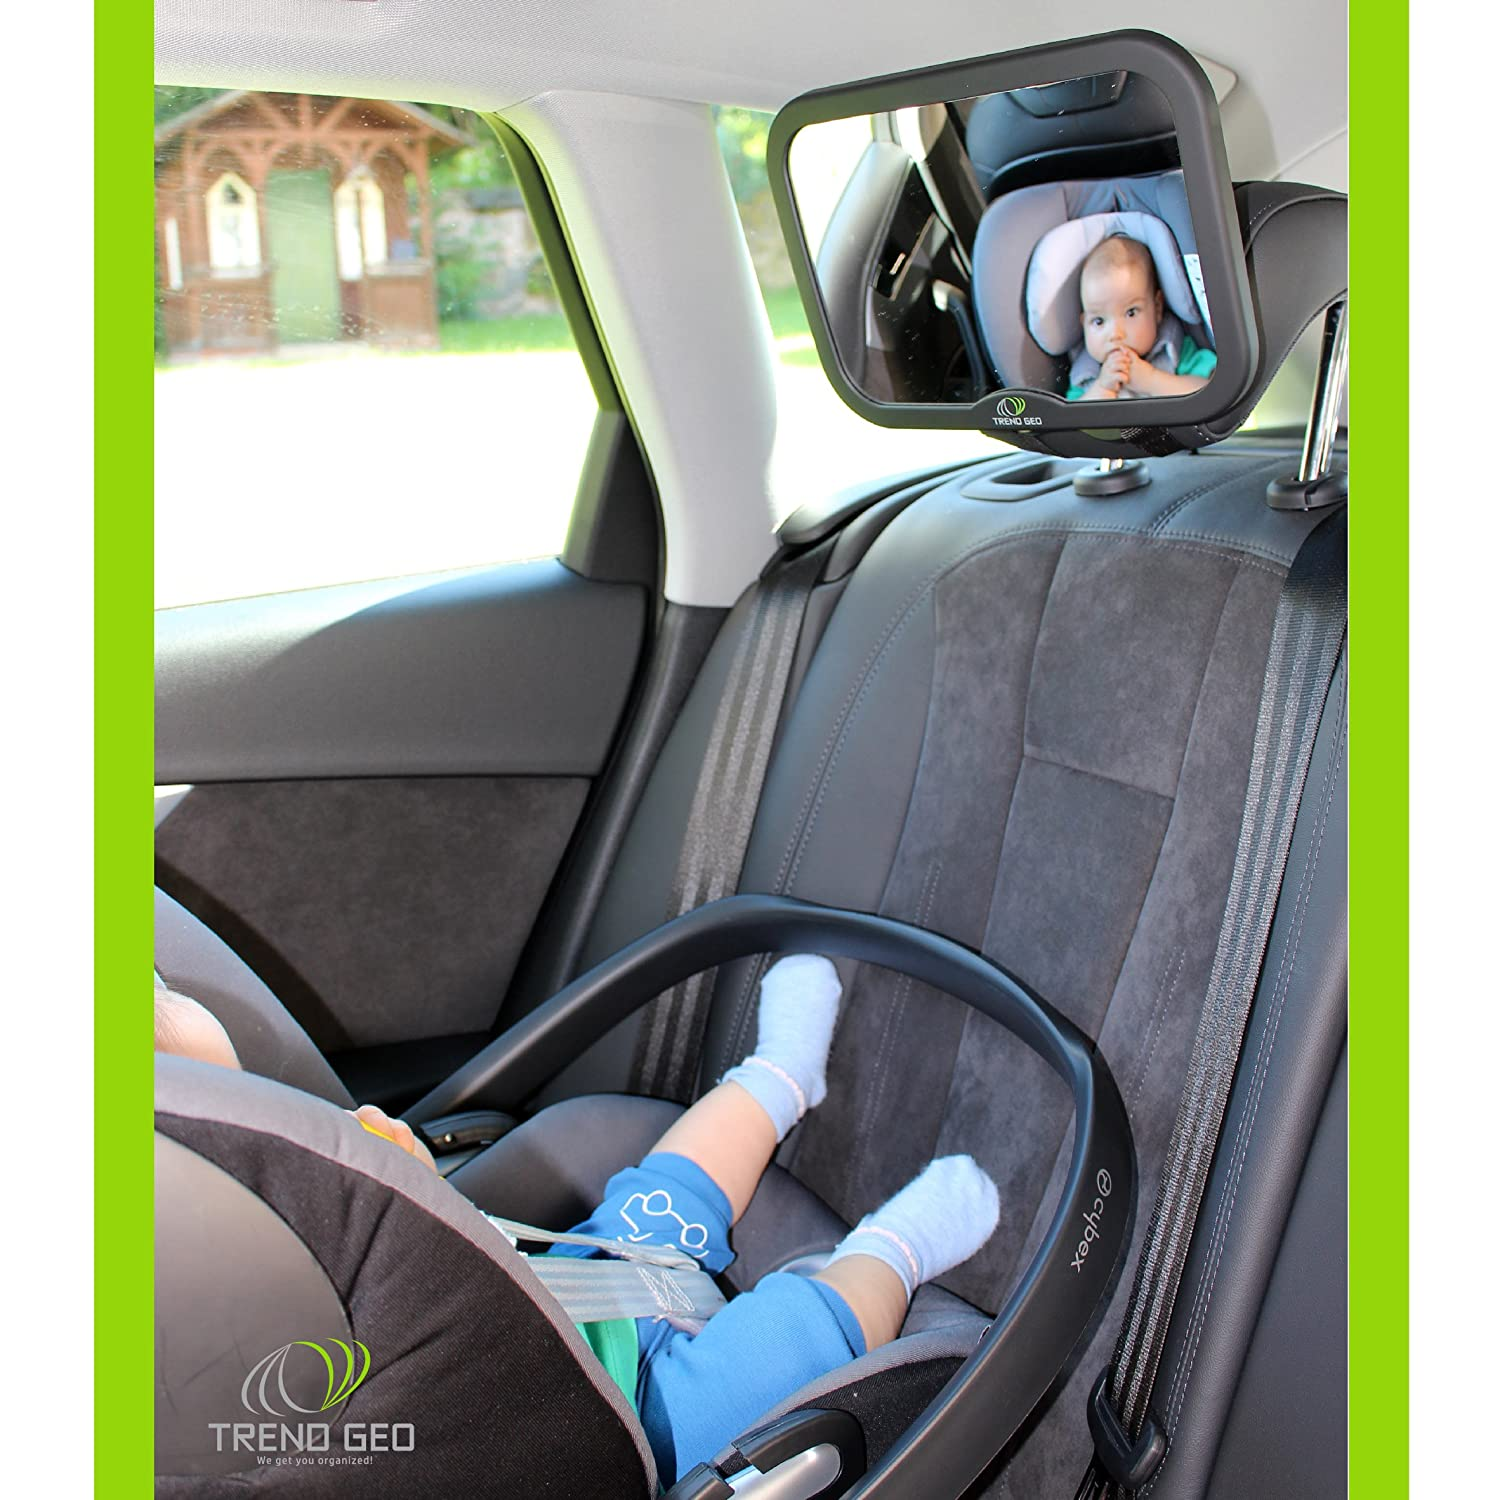 Rear Facing Car Seat or Front Facing Back Seat Clear View of Infant in Infant Seat 2 Mirrors Set for Infant Car Seats Easy to Install at The Rear Trendgeo Baby Car Seat Mirror Safe Shatter Proof